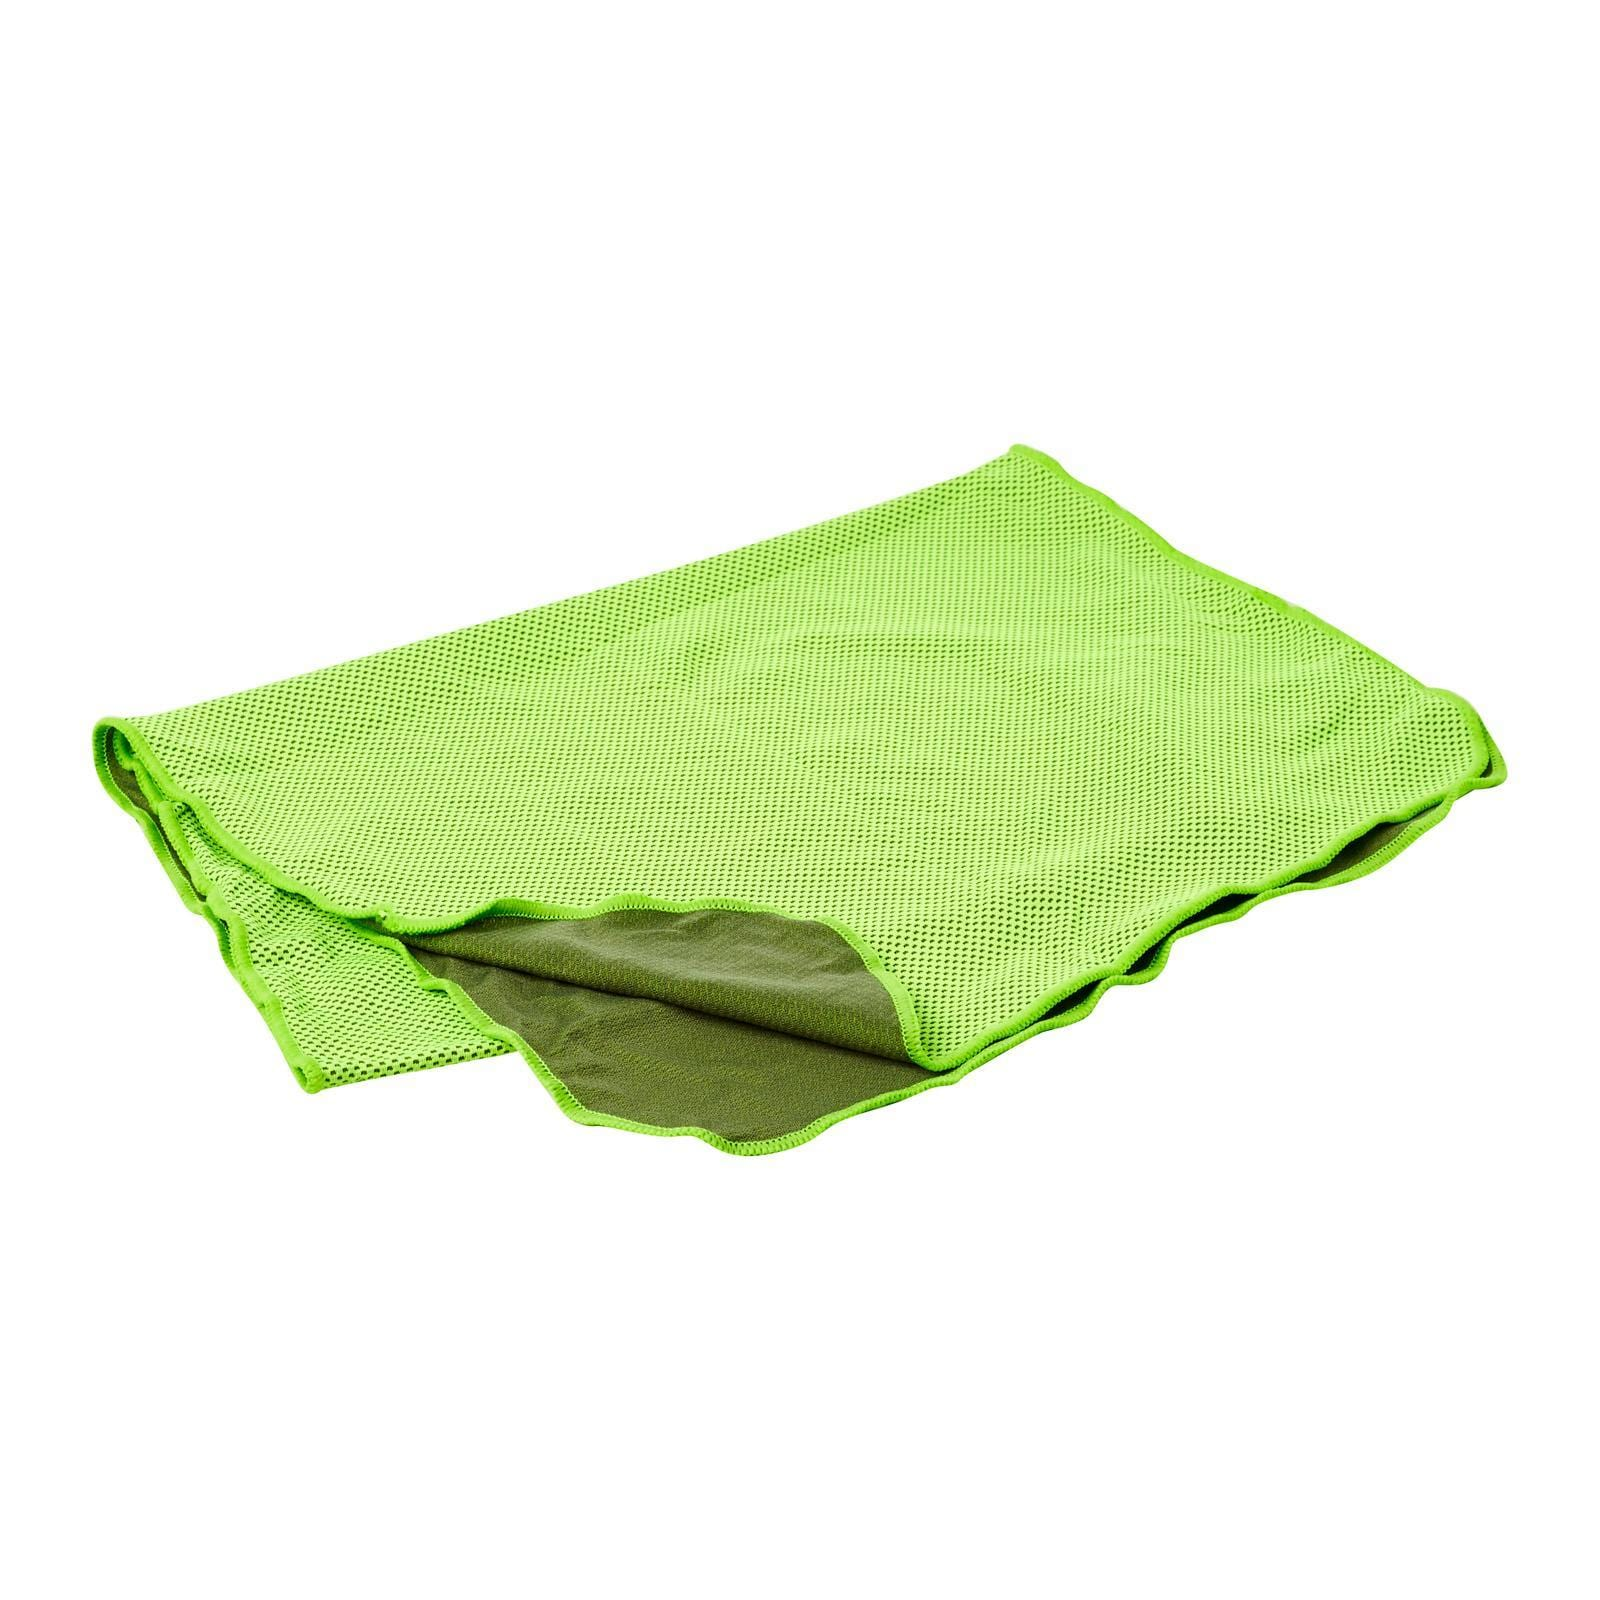 Coolite Sports Towel In Neon Lime